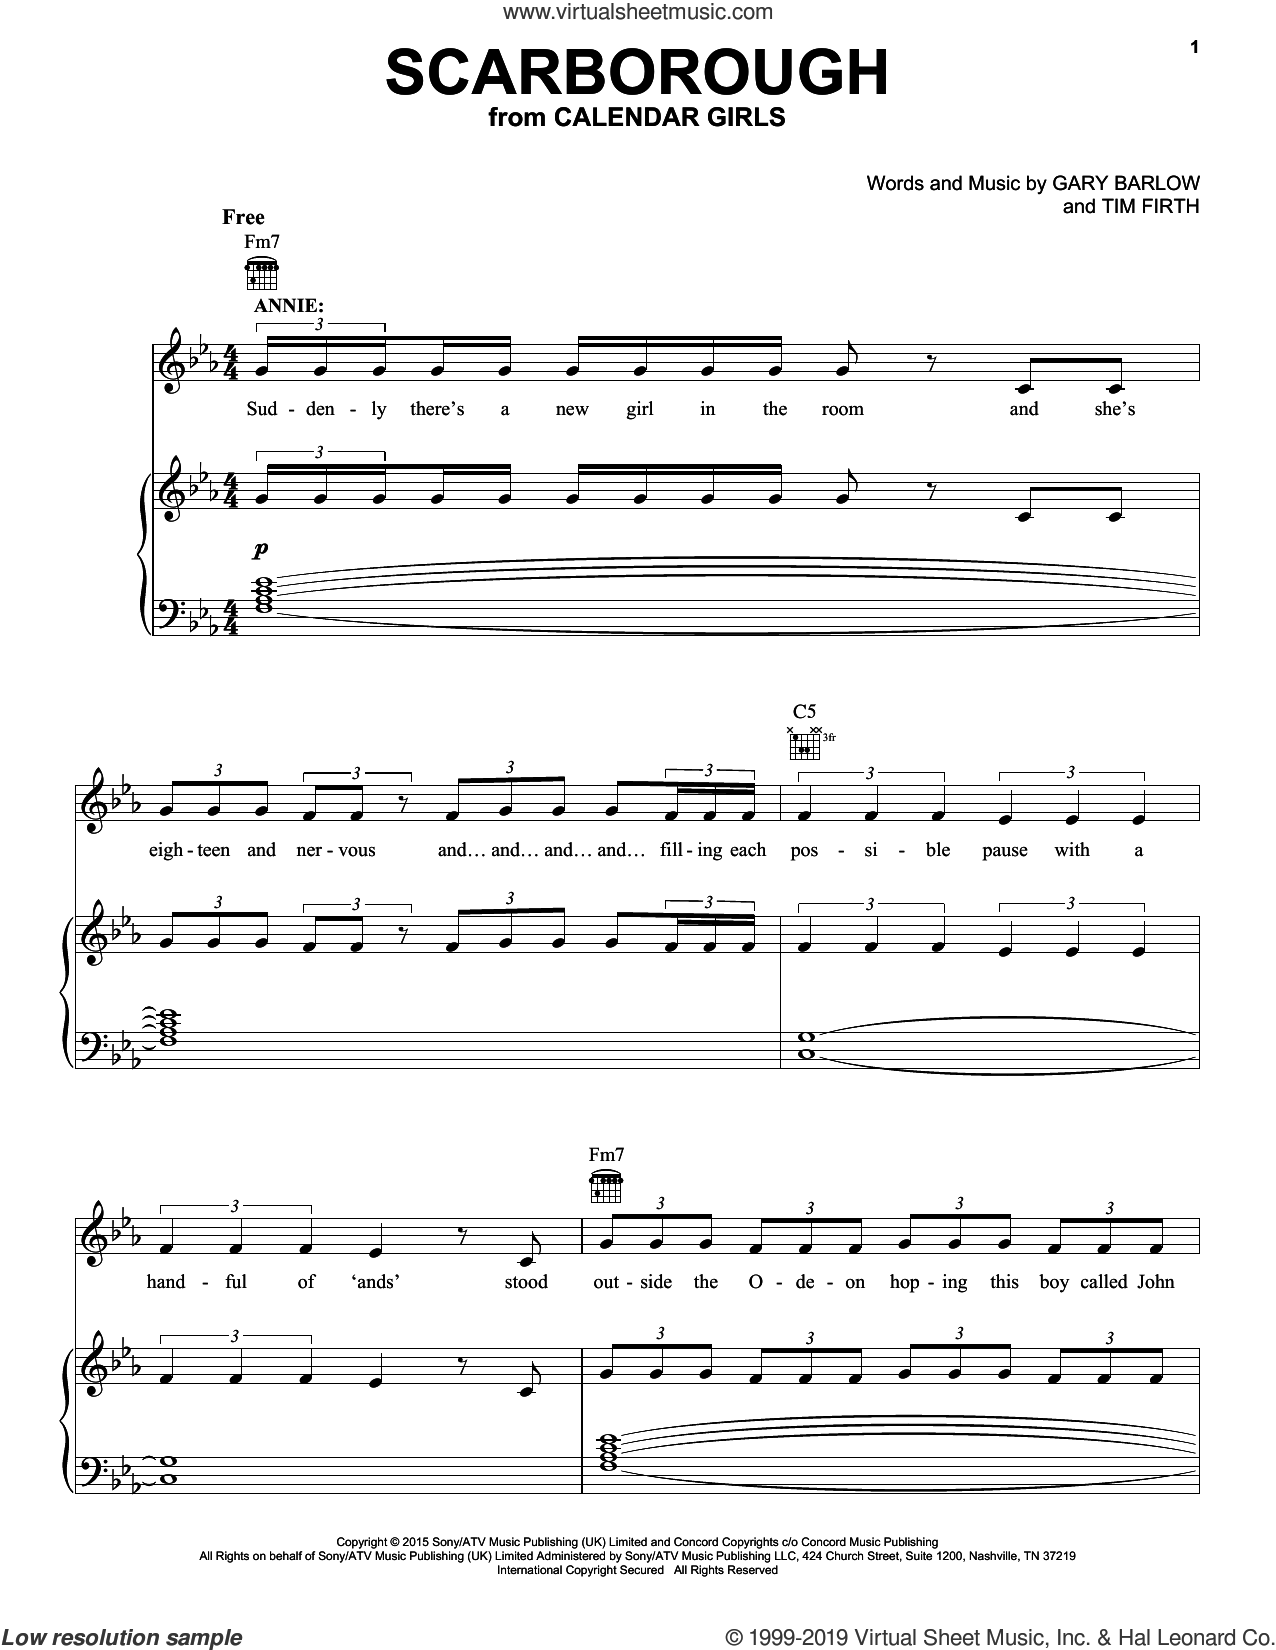 Scarborough (from Calendar Girls the Musical) sheet music for voice, piano or guitar by Gary Barlow, Gary Barlow and Tim Firth and Tim Firth, intermediate skill level